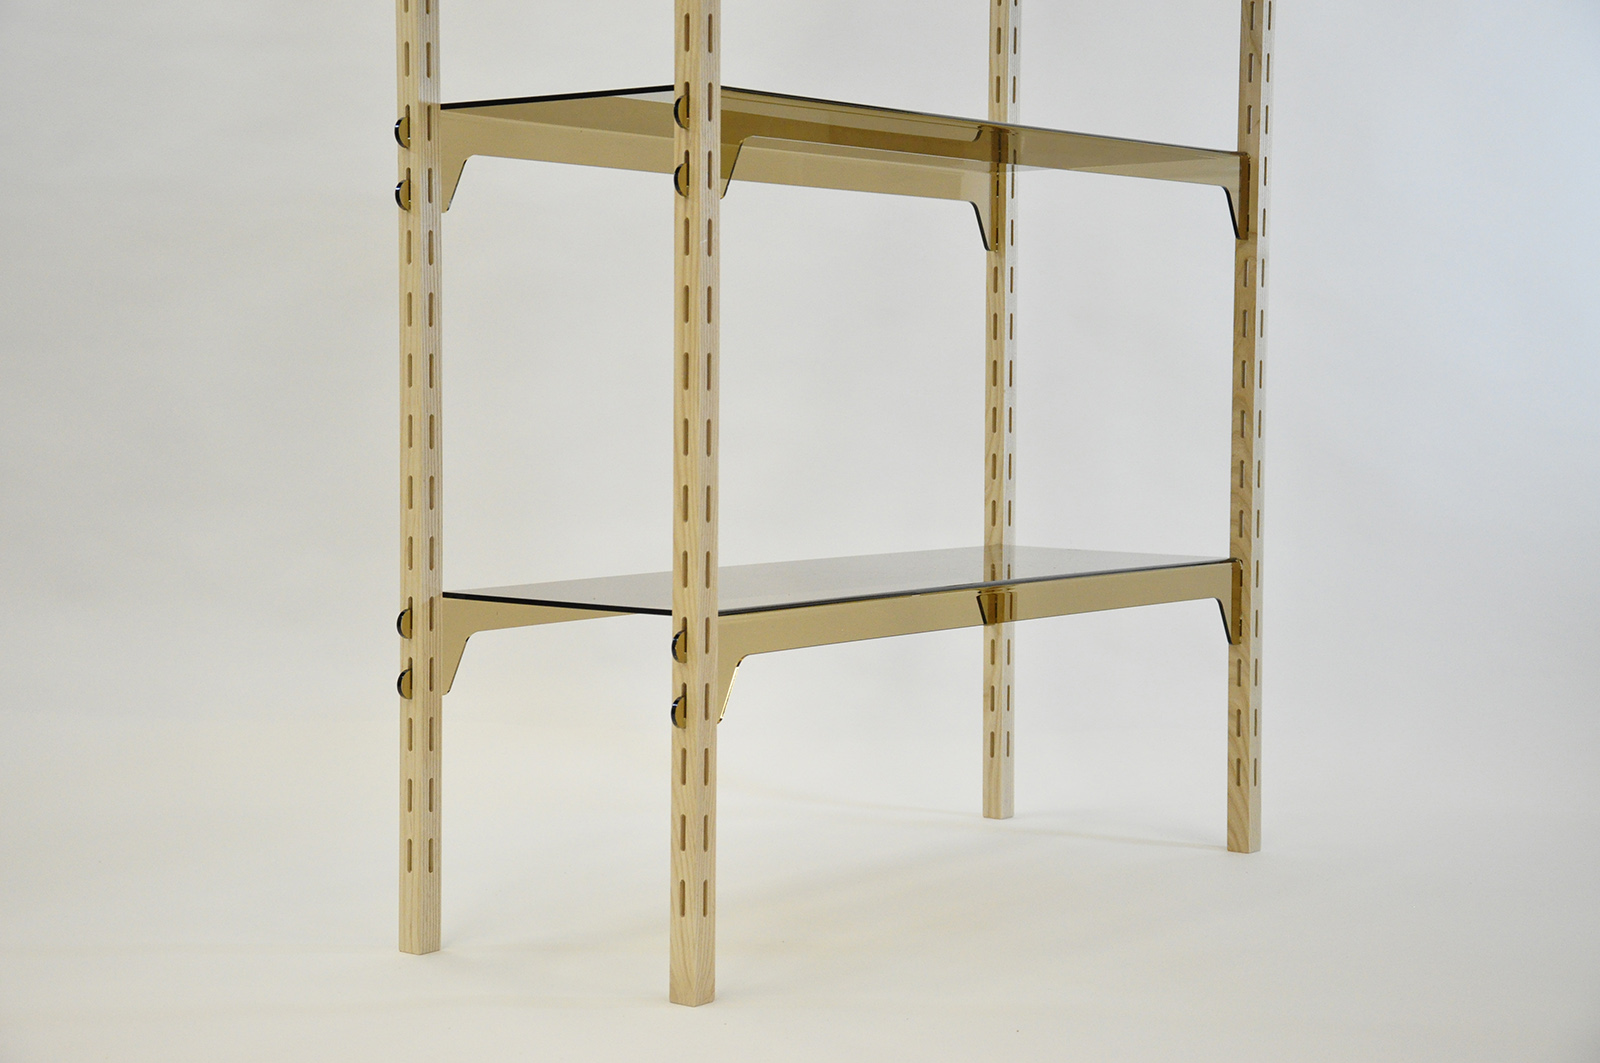 Design Brussels Amorce Studio Rack Modular Shelf